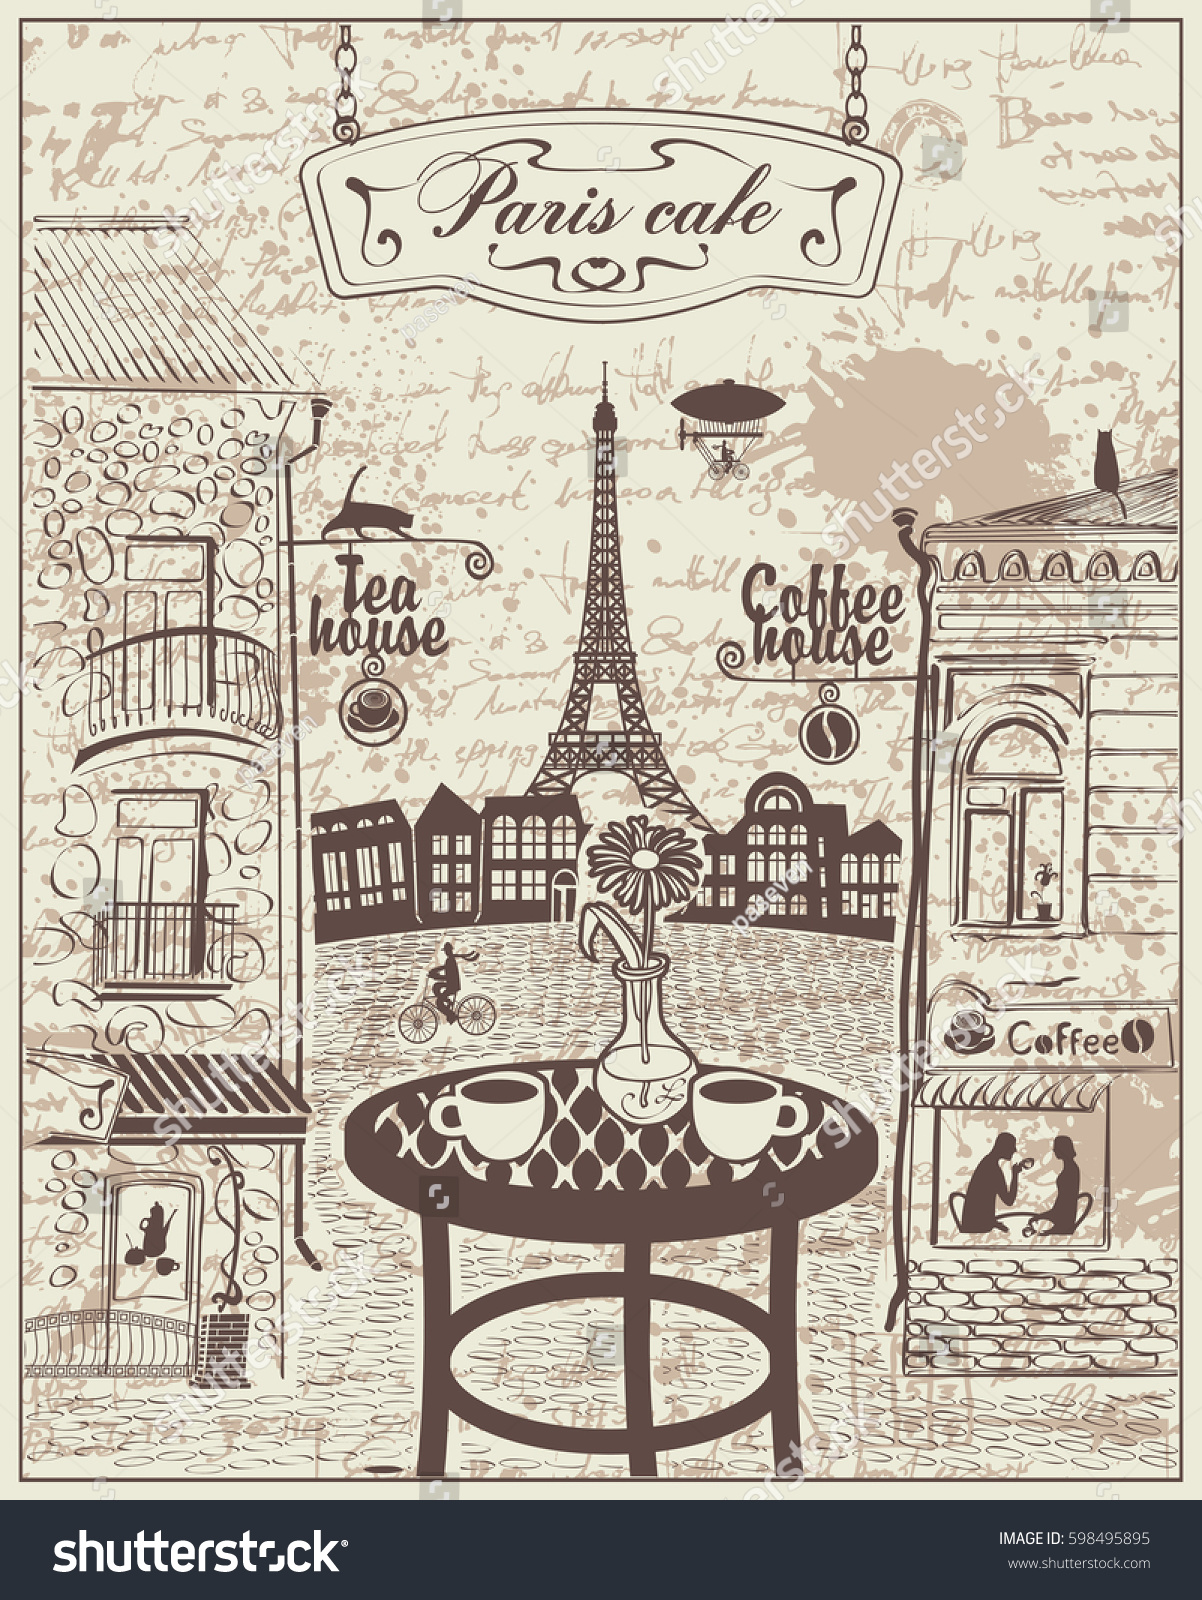 Outdoor cafe in paris with tower in background - Parisian Street Cafe With Views Of The Eiffel Tower And Old Buildings On The Background Of